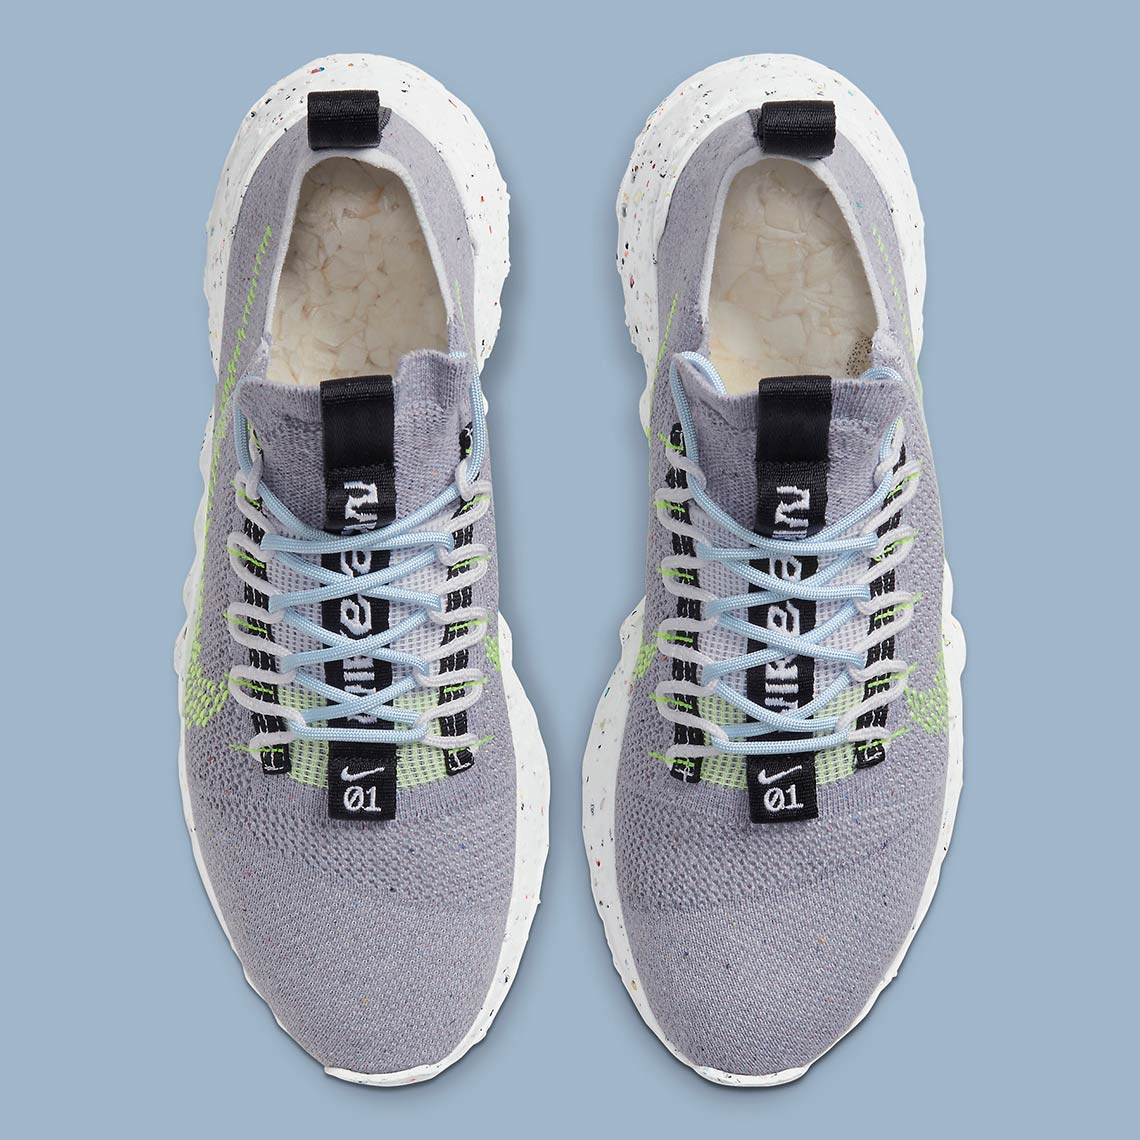 Nike Space Hippie 01 ''Grey/Volt'' - CQ3986-002